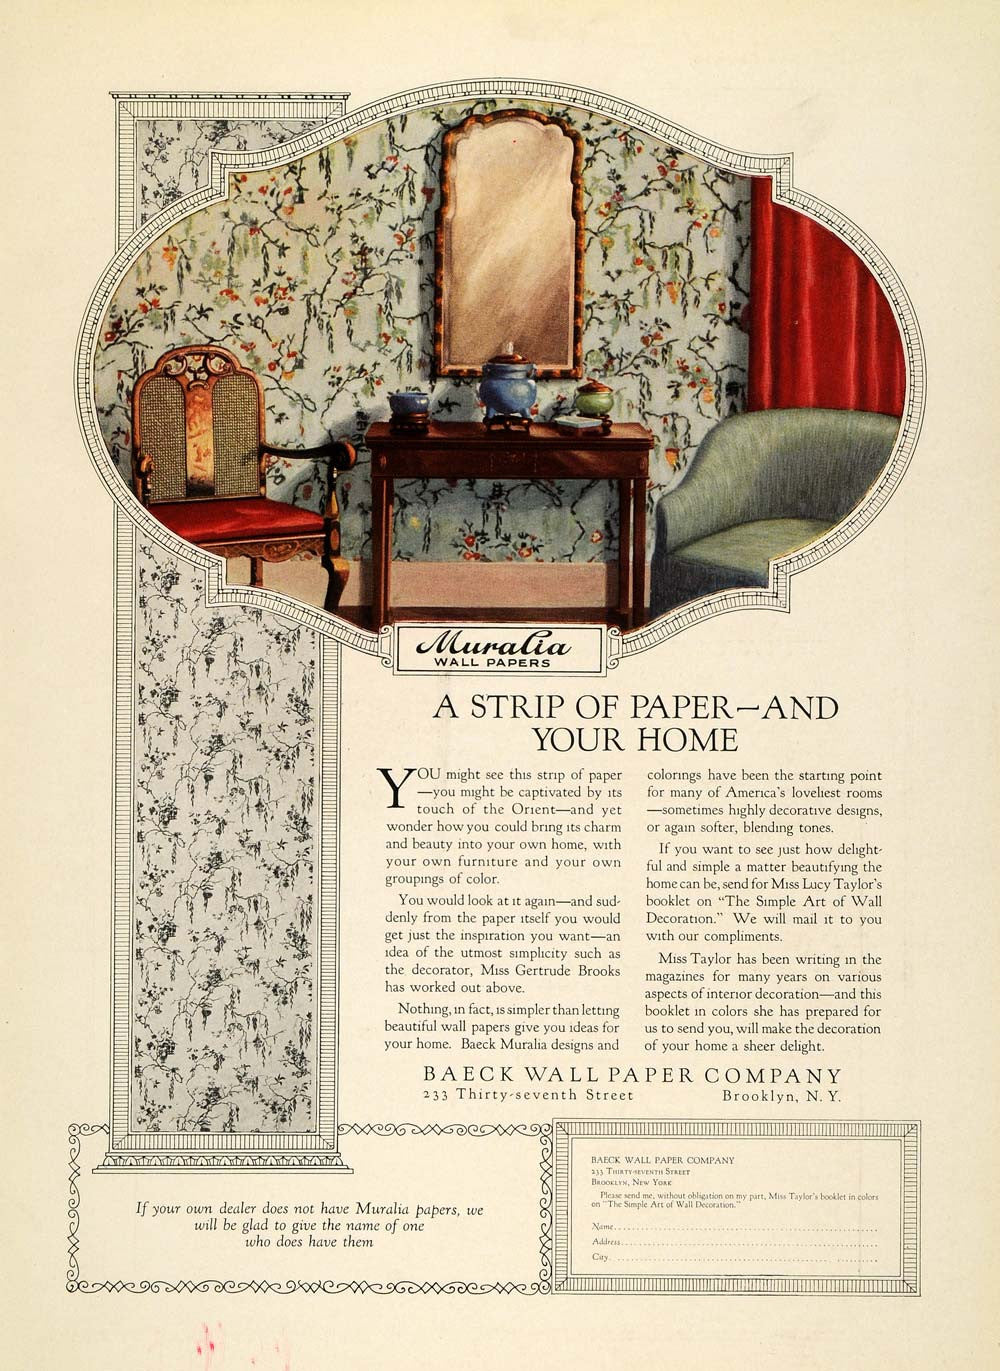 1925 Ad Baeck Wall Paper Home Decor Oriental Floral Pattern Interior Design Ins3